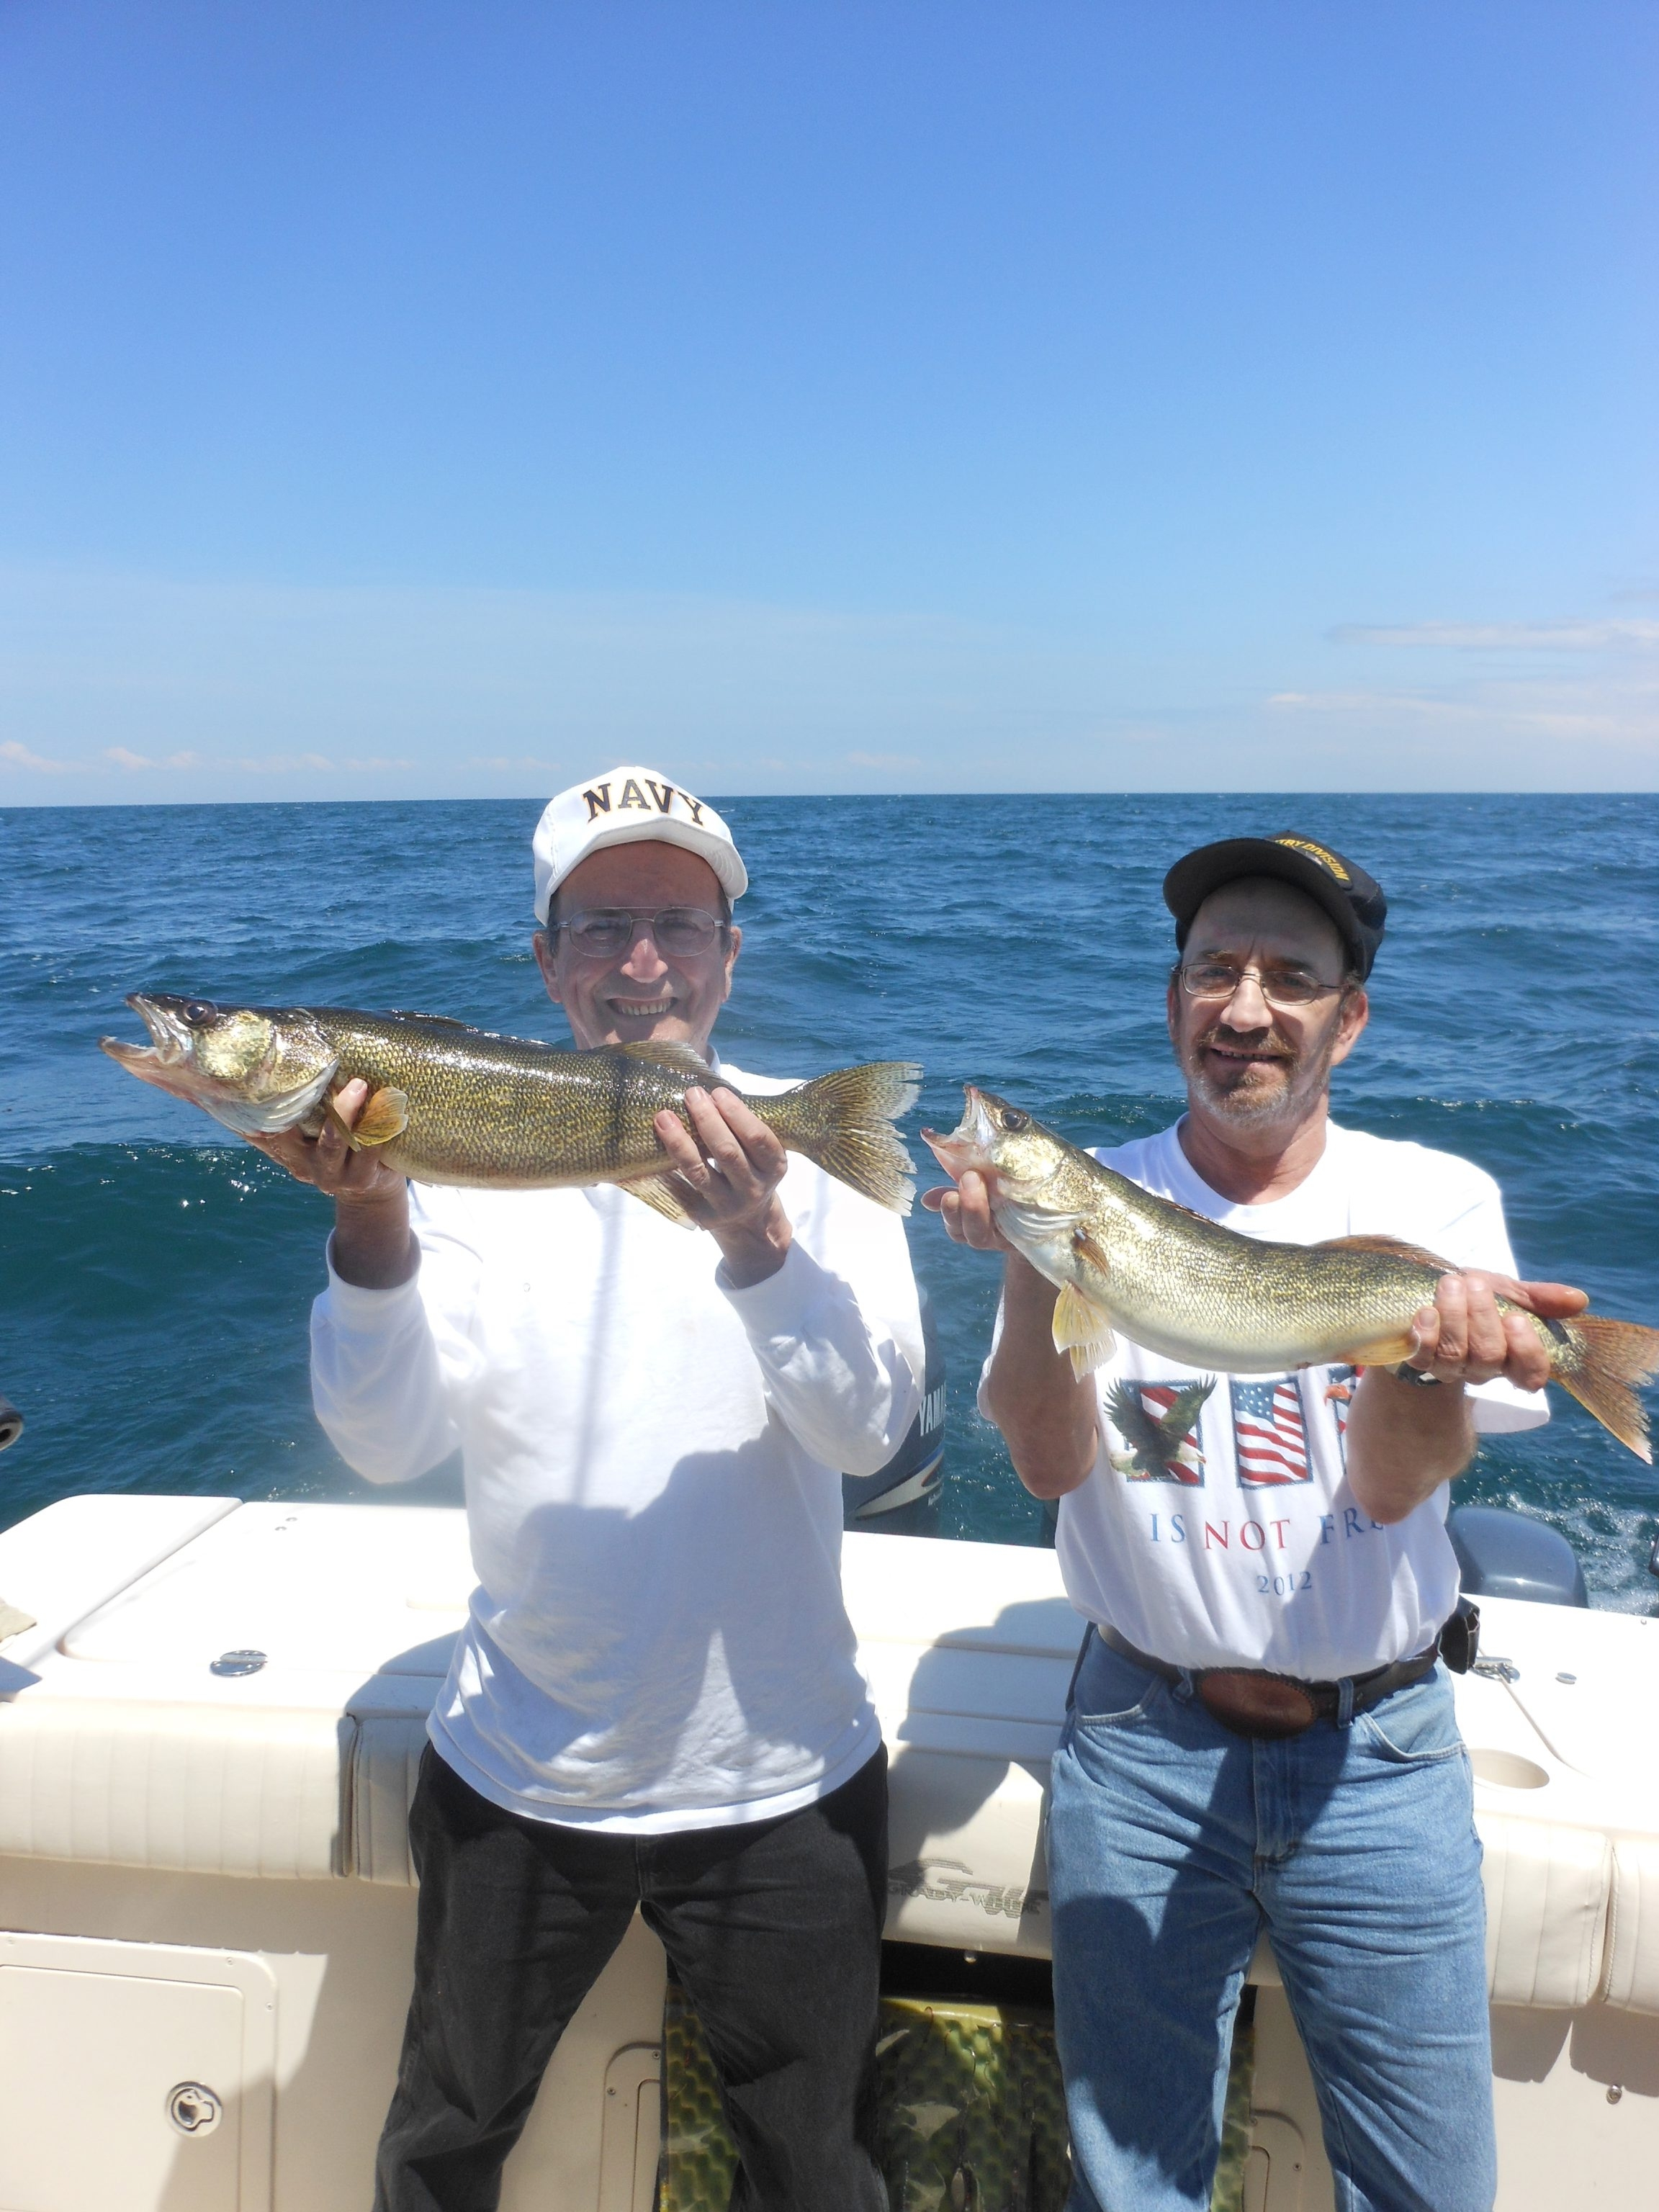 Veterans Dwight Wiebold and Vince Niedzielski from Erie, Pa. with a pair of nice Lake Erie walleye from waters off Barcelona Harbor.